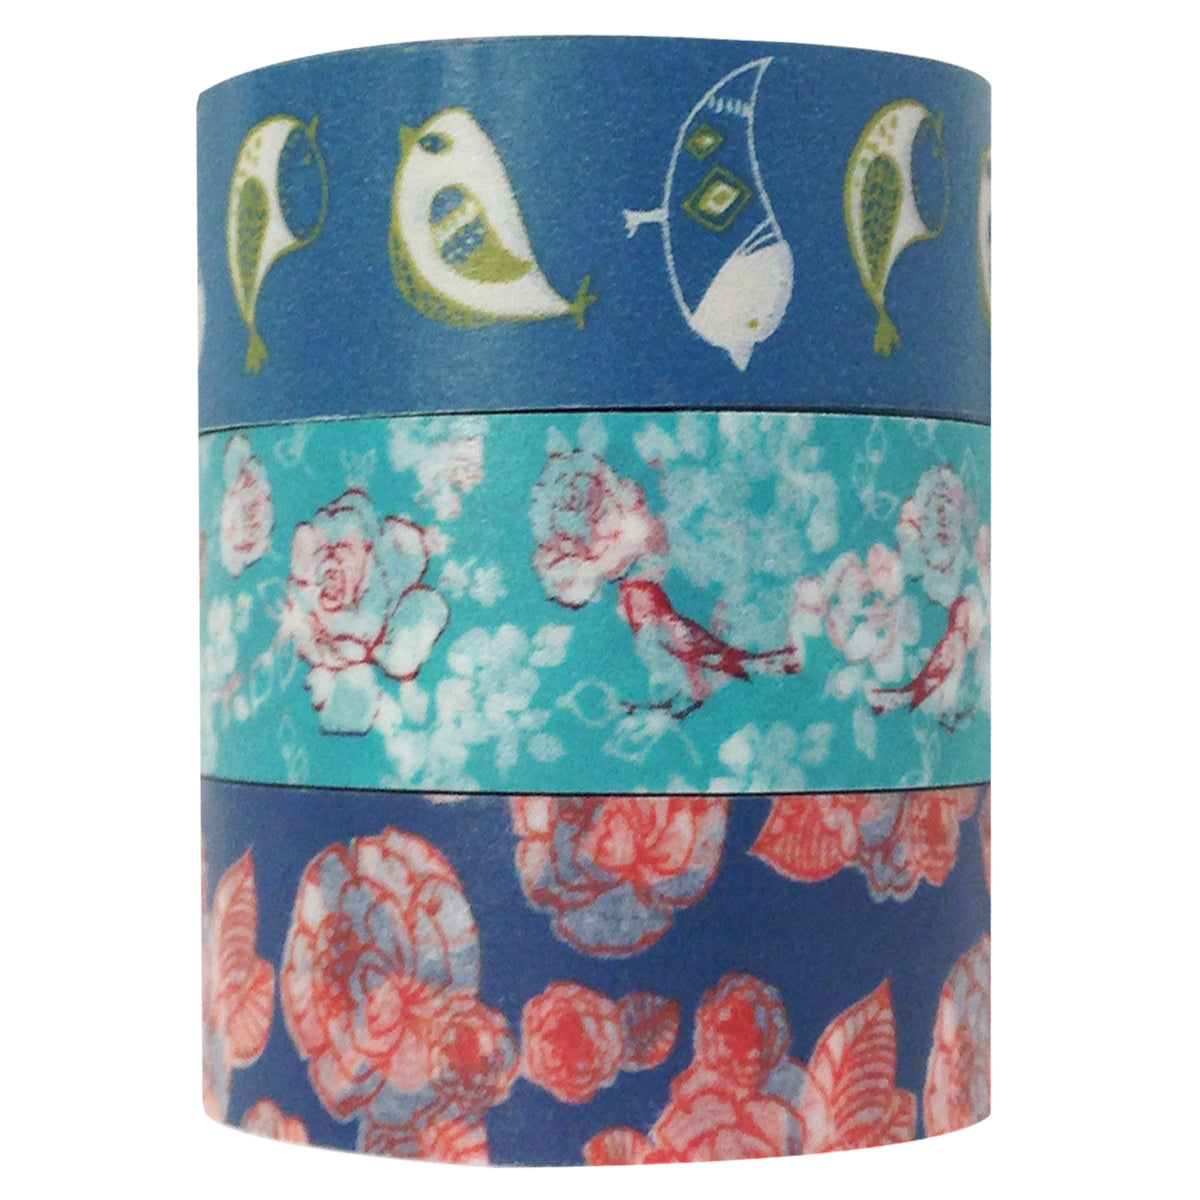 Wrapables Washi Tape (set of 3)